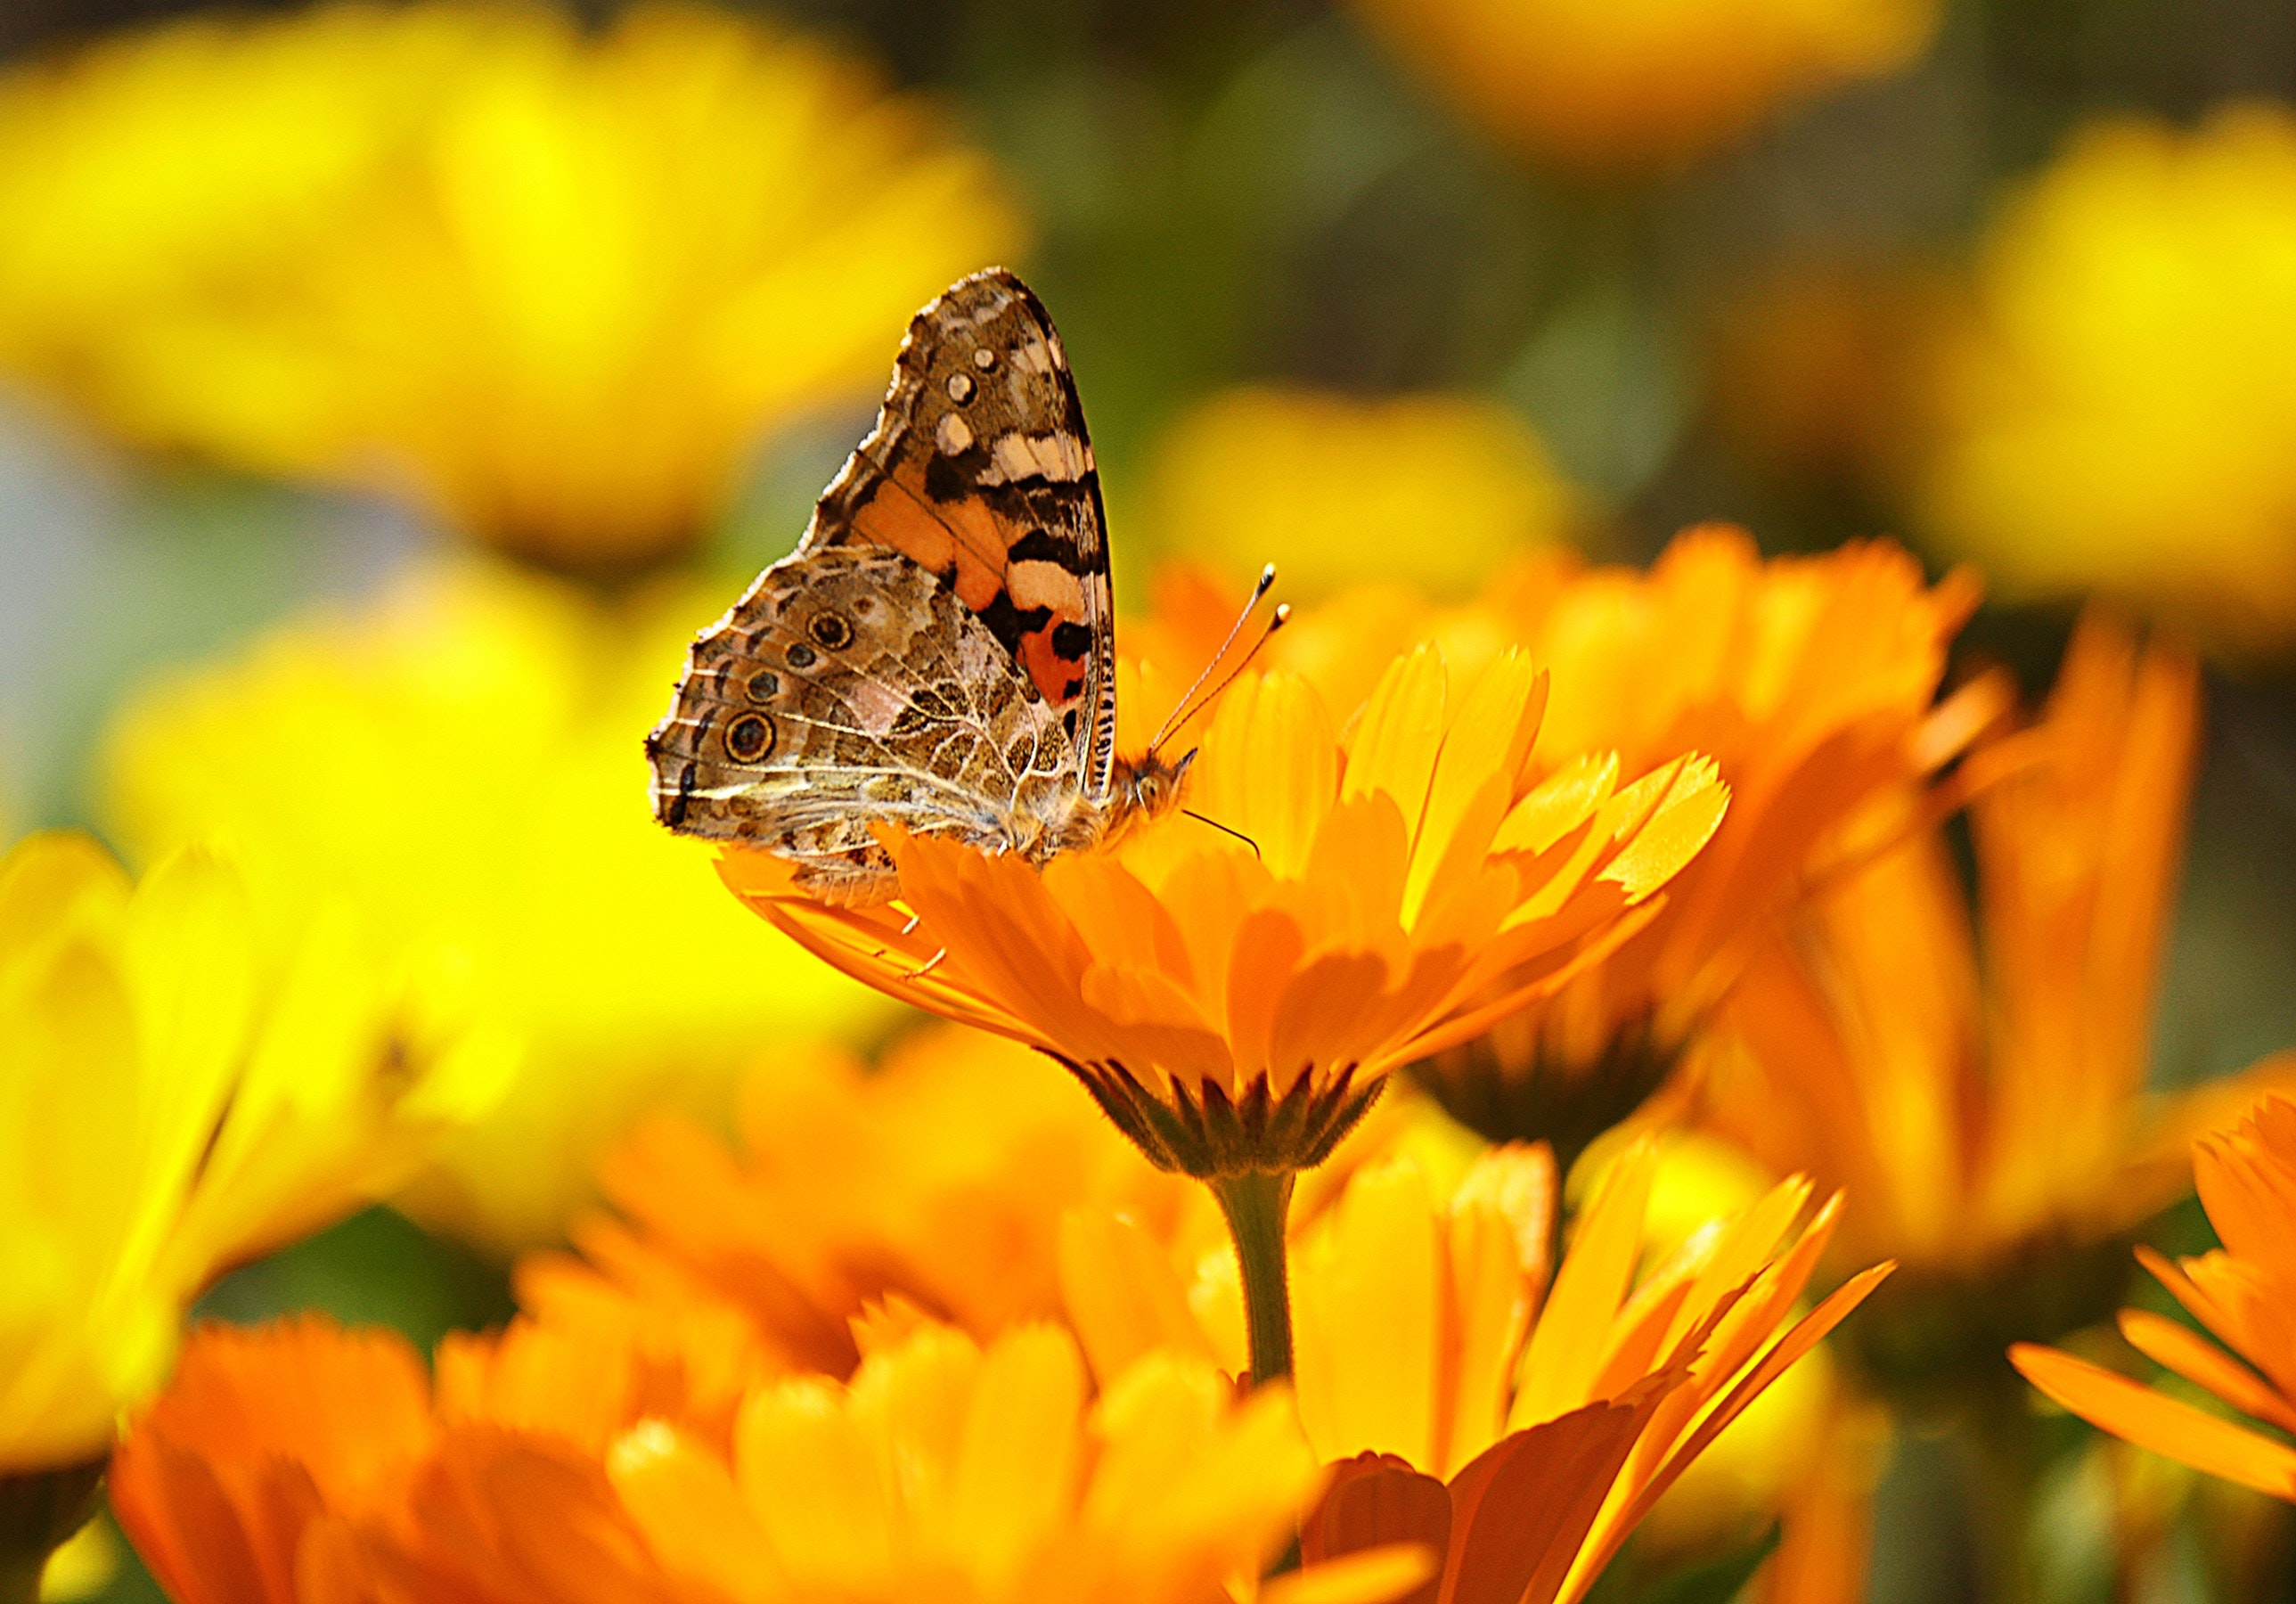 Butterfly Perched on the Yellow Petaled Flower during Daytime, Asteraceae, Blur, Butterfly, Calendula, HQ Photo